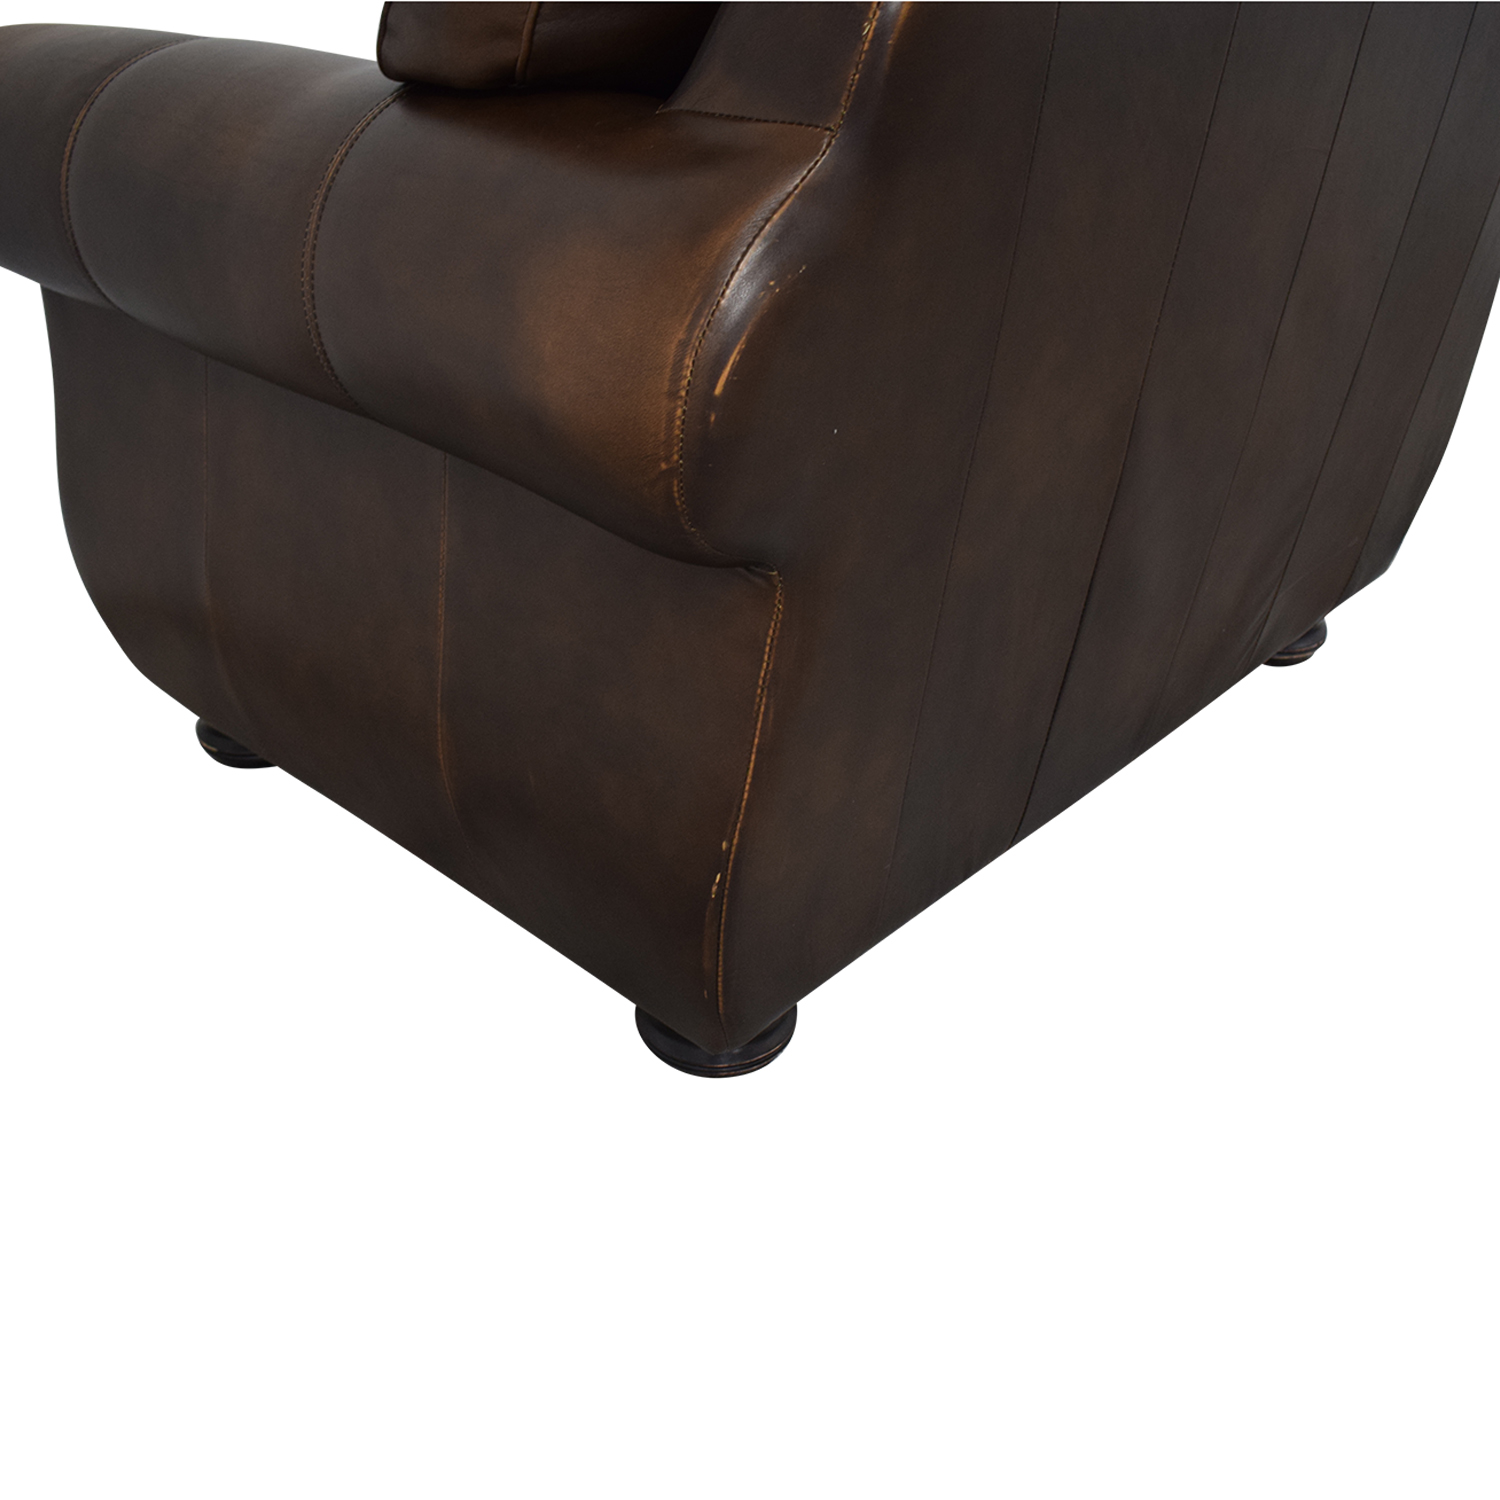 buy Raymour & Flanigan Leather Chair Raymour & Flanigan Accent Chairs